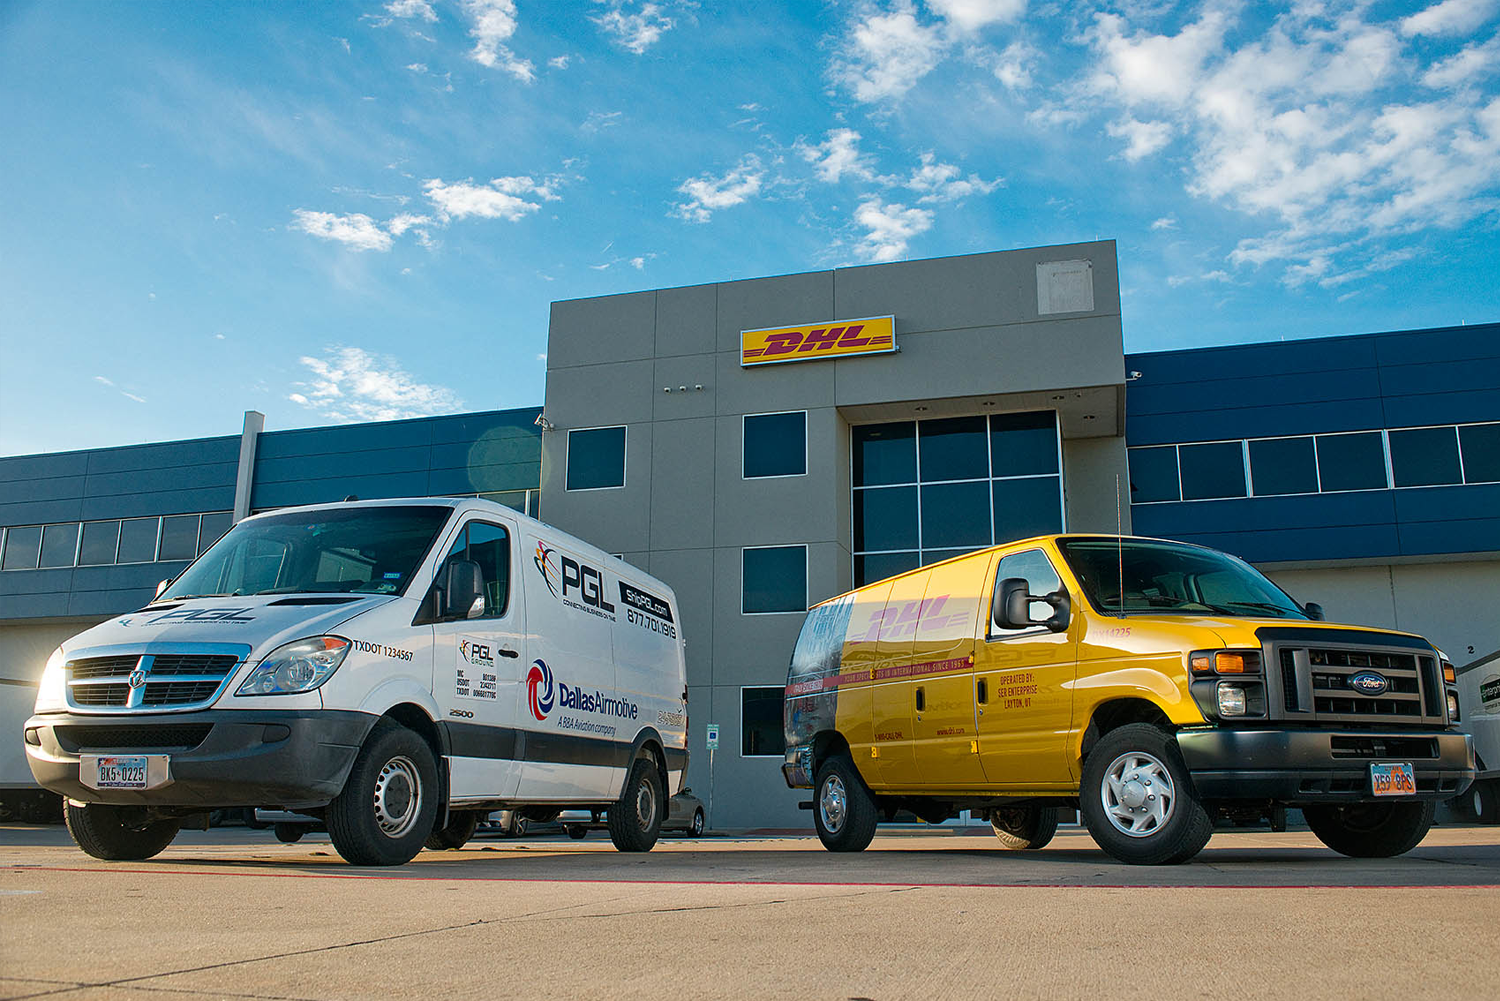 PGL & DHL Vans Together